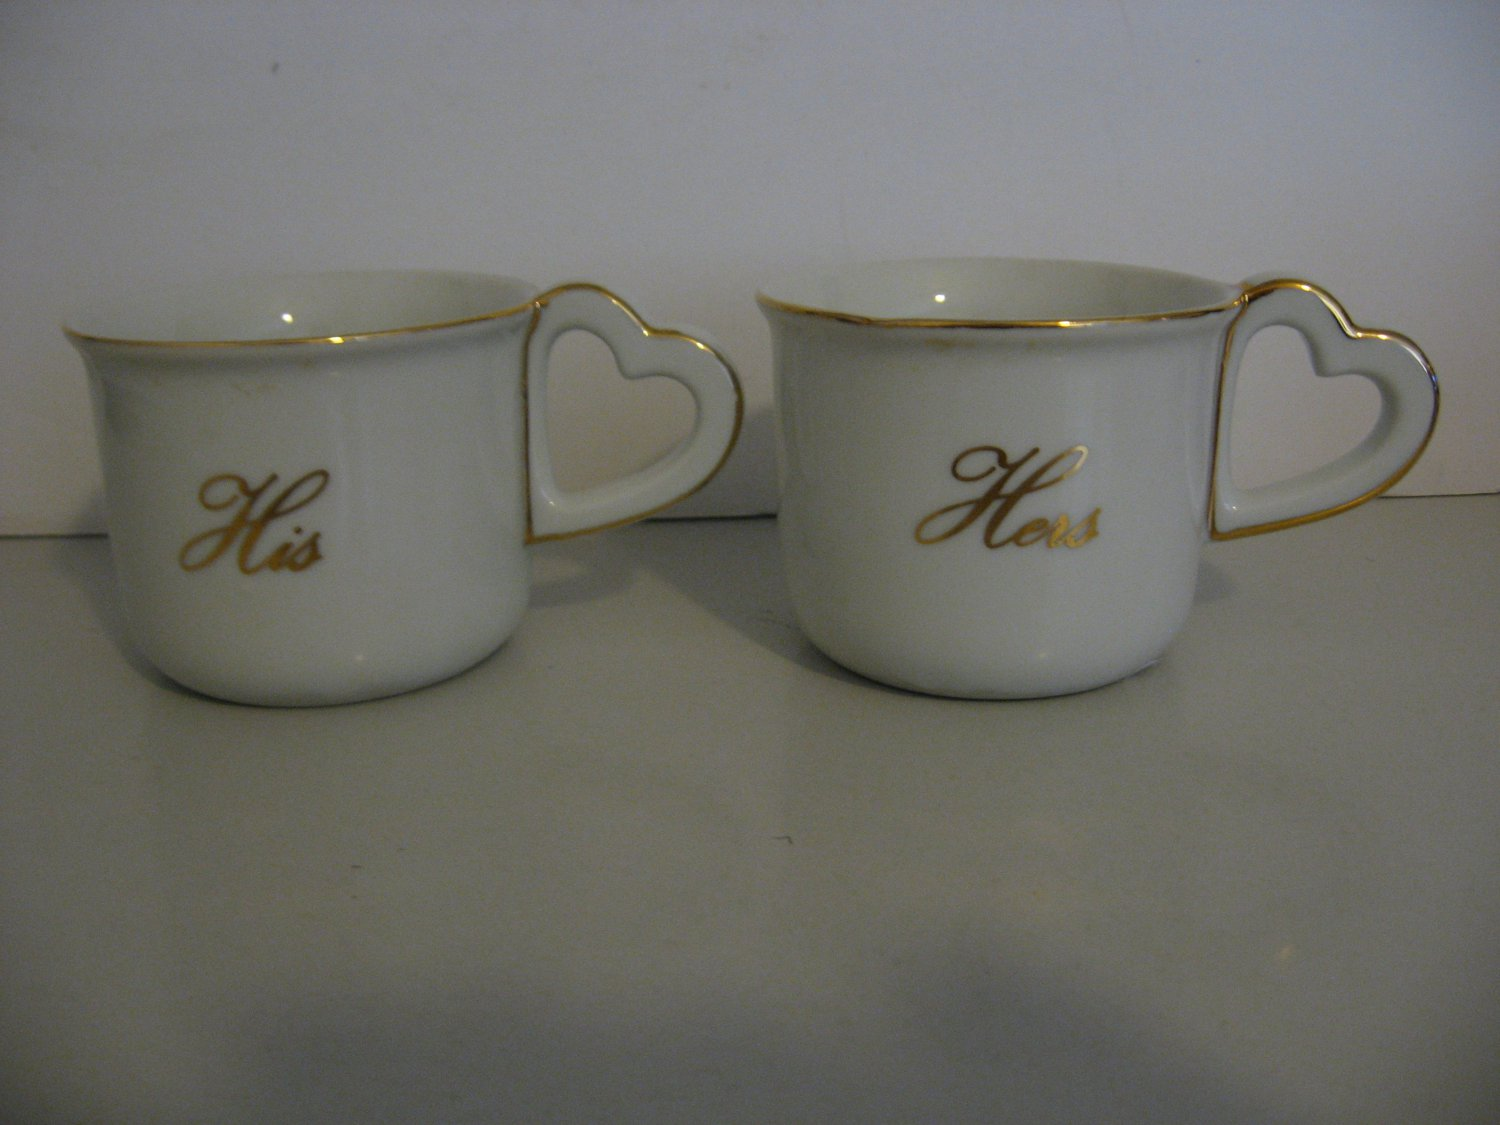 HIS and HERS - Heart Handle Mugs - Gold Trim And Lettering - Toscany Collection